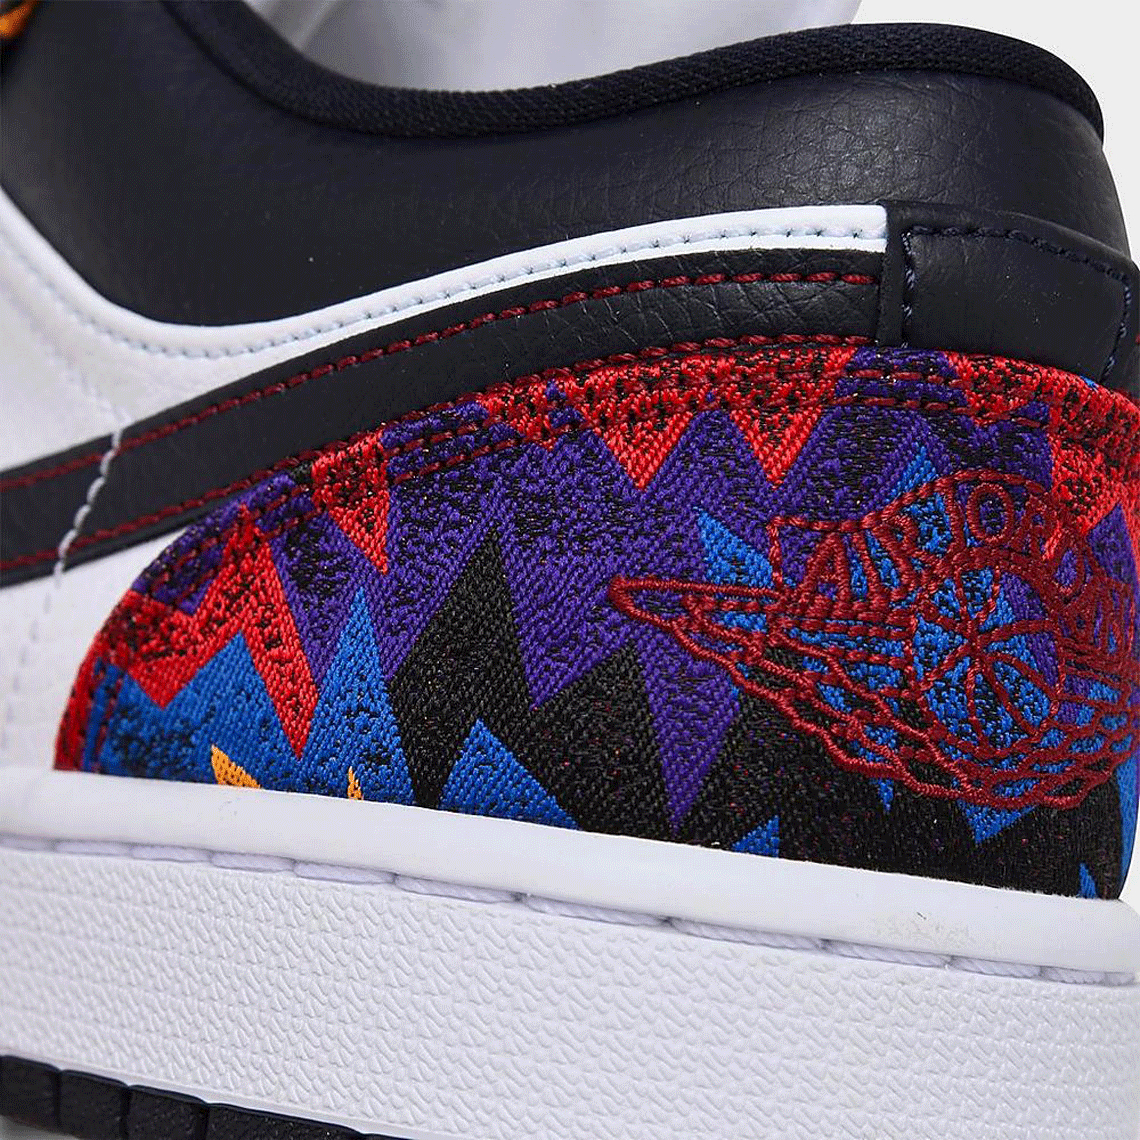 Air Jordan 1 Low Nothing But Net Cz8659 100 Info Sneakernews Com